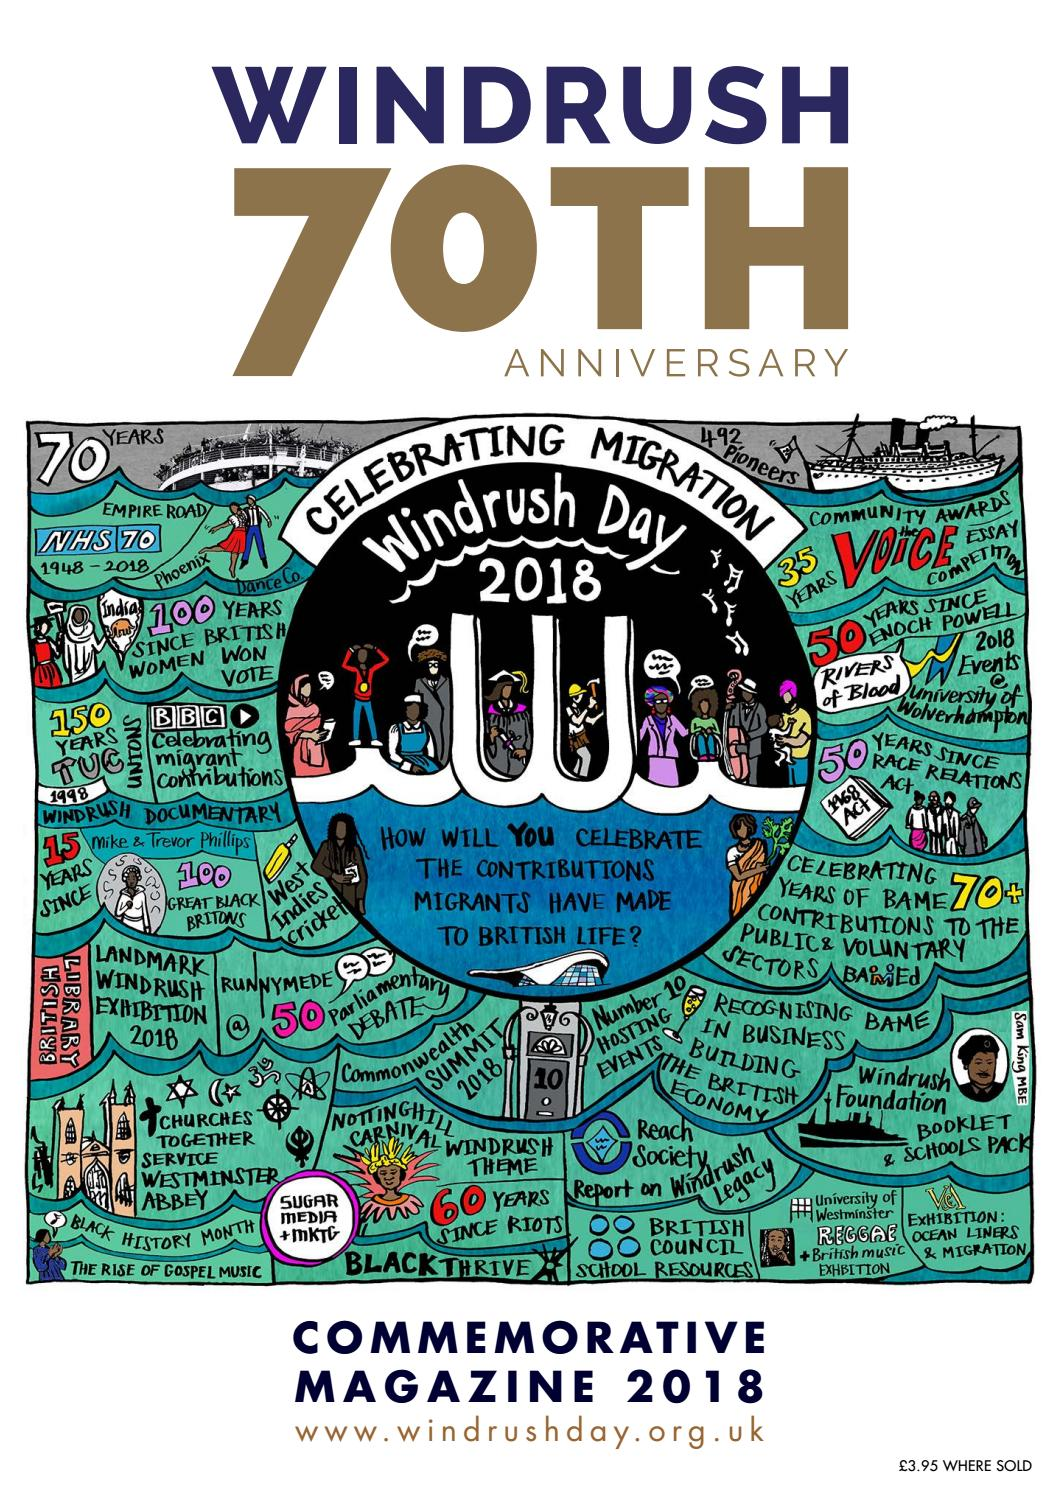 Windrush Commemorative magazine 2018 by Sugar Media and Marketing - issuu